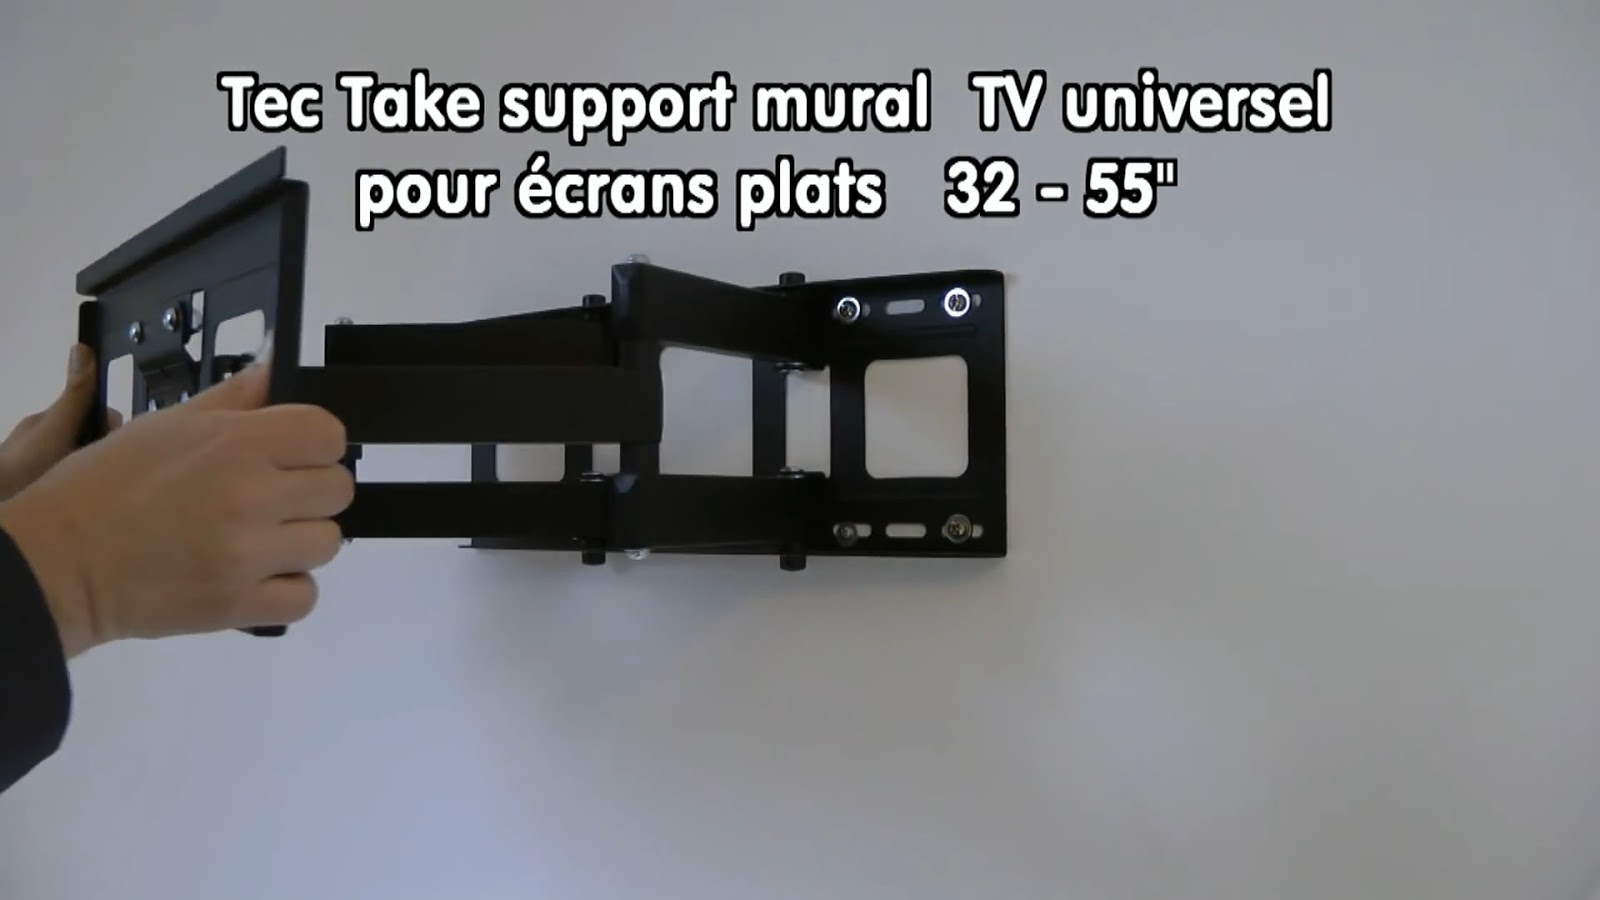 Fixer un support mural pour tv tuto - Notice support mural tv ...